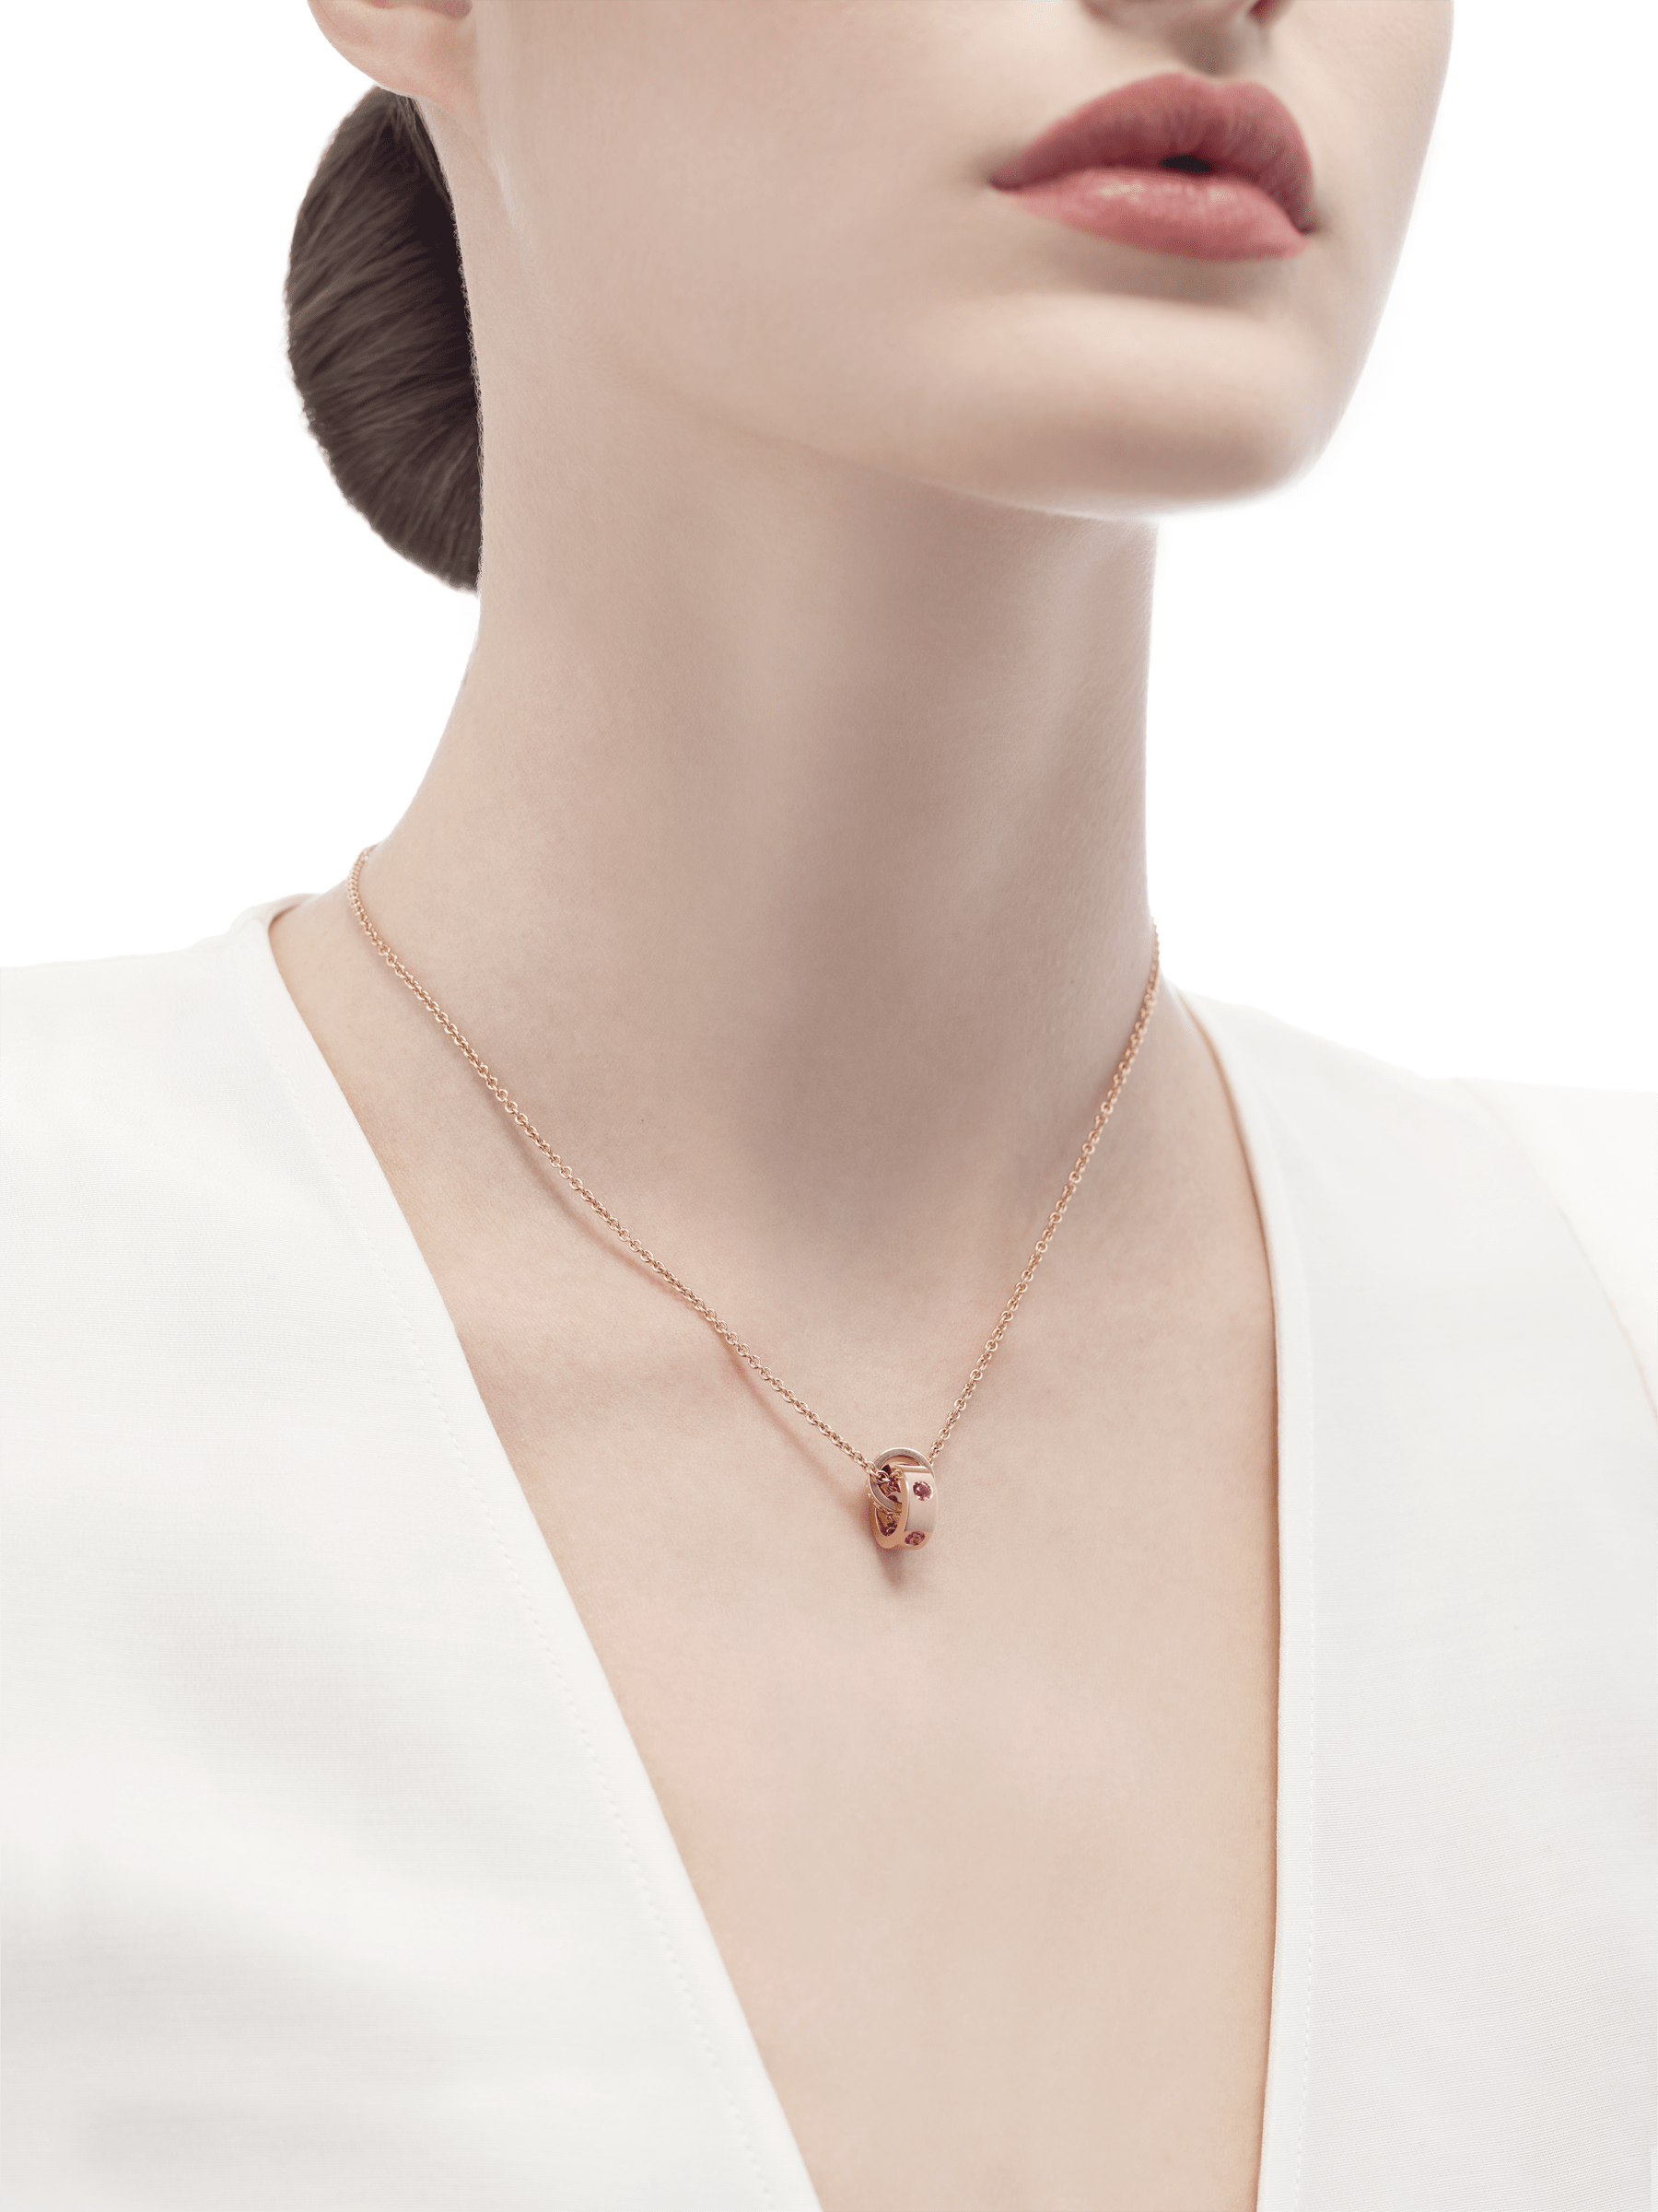 BVLGARI BVLGARI necklace with 18 kt rose gold chain and 18 kt rose gold pendant set with amethysts and pink tourmalines 352618 image 4